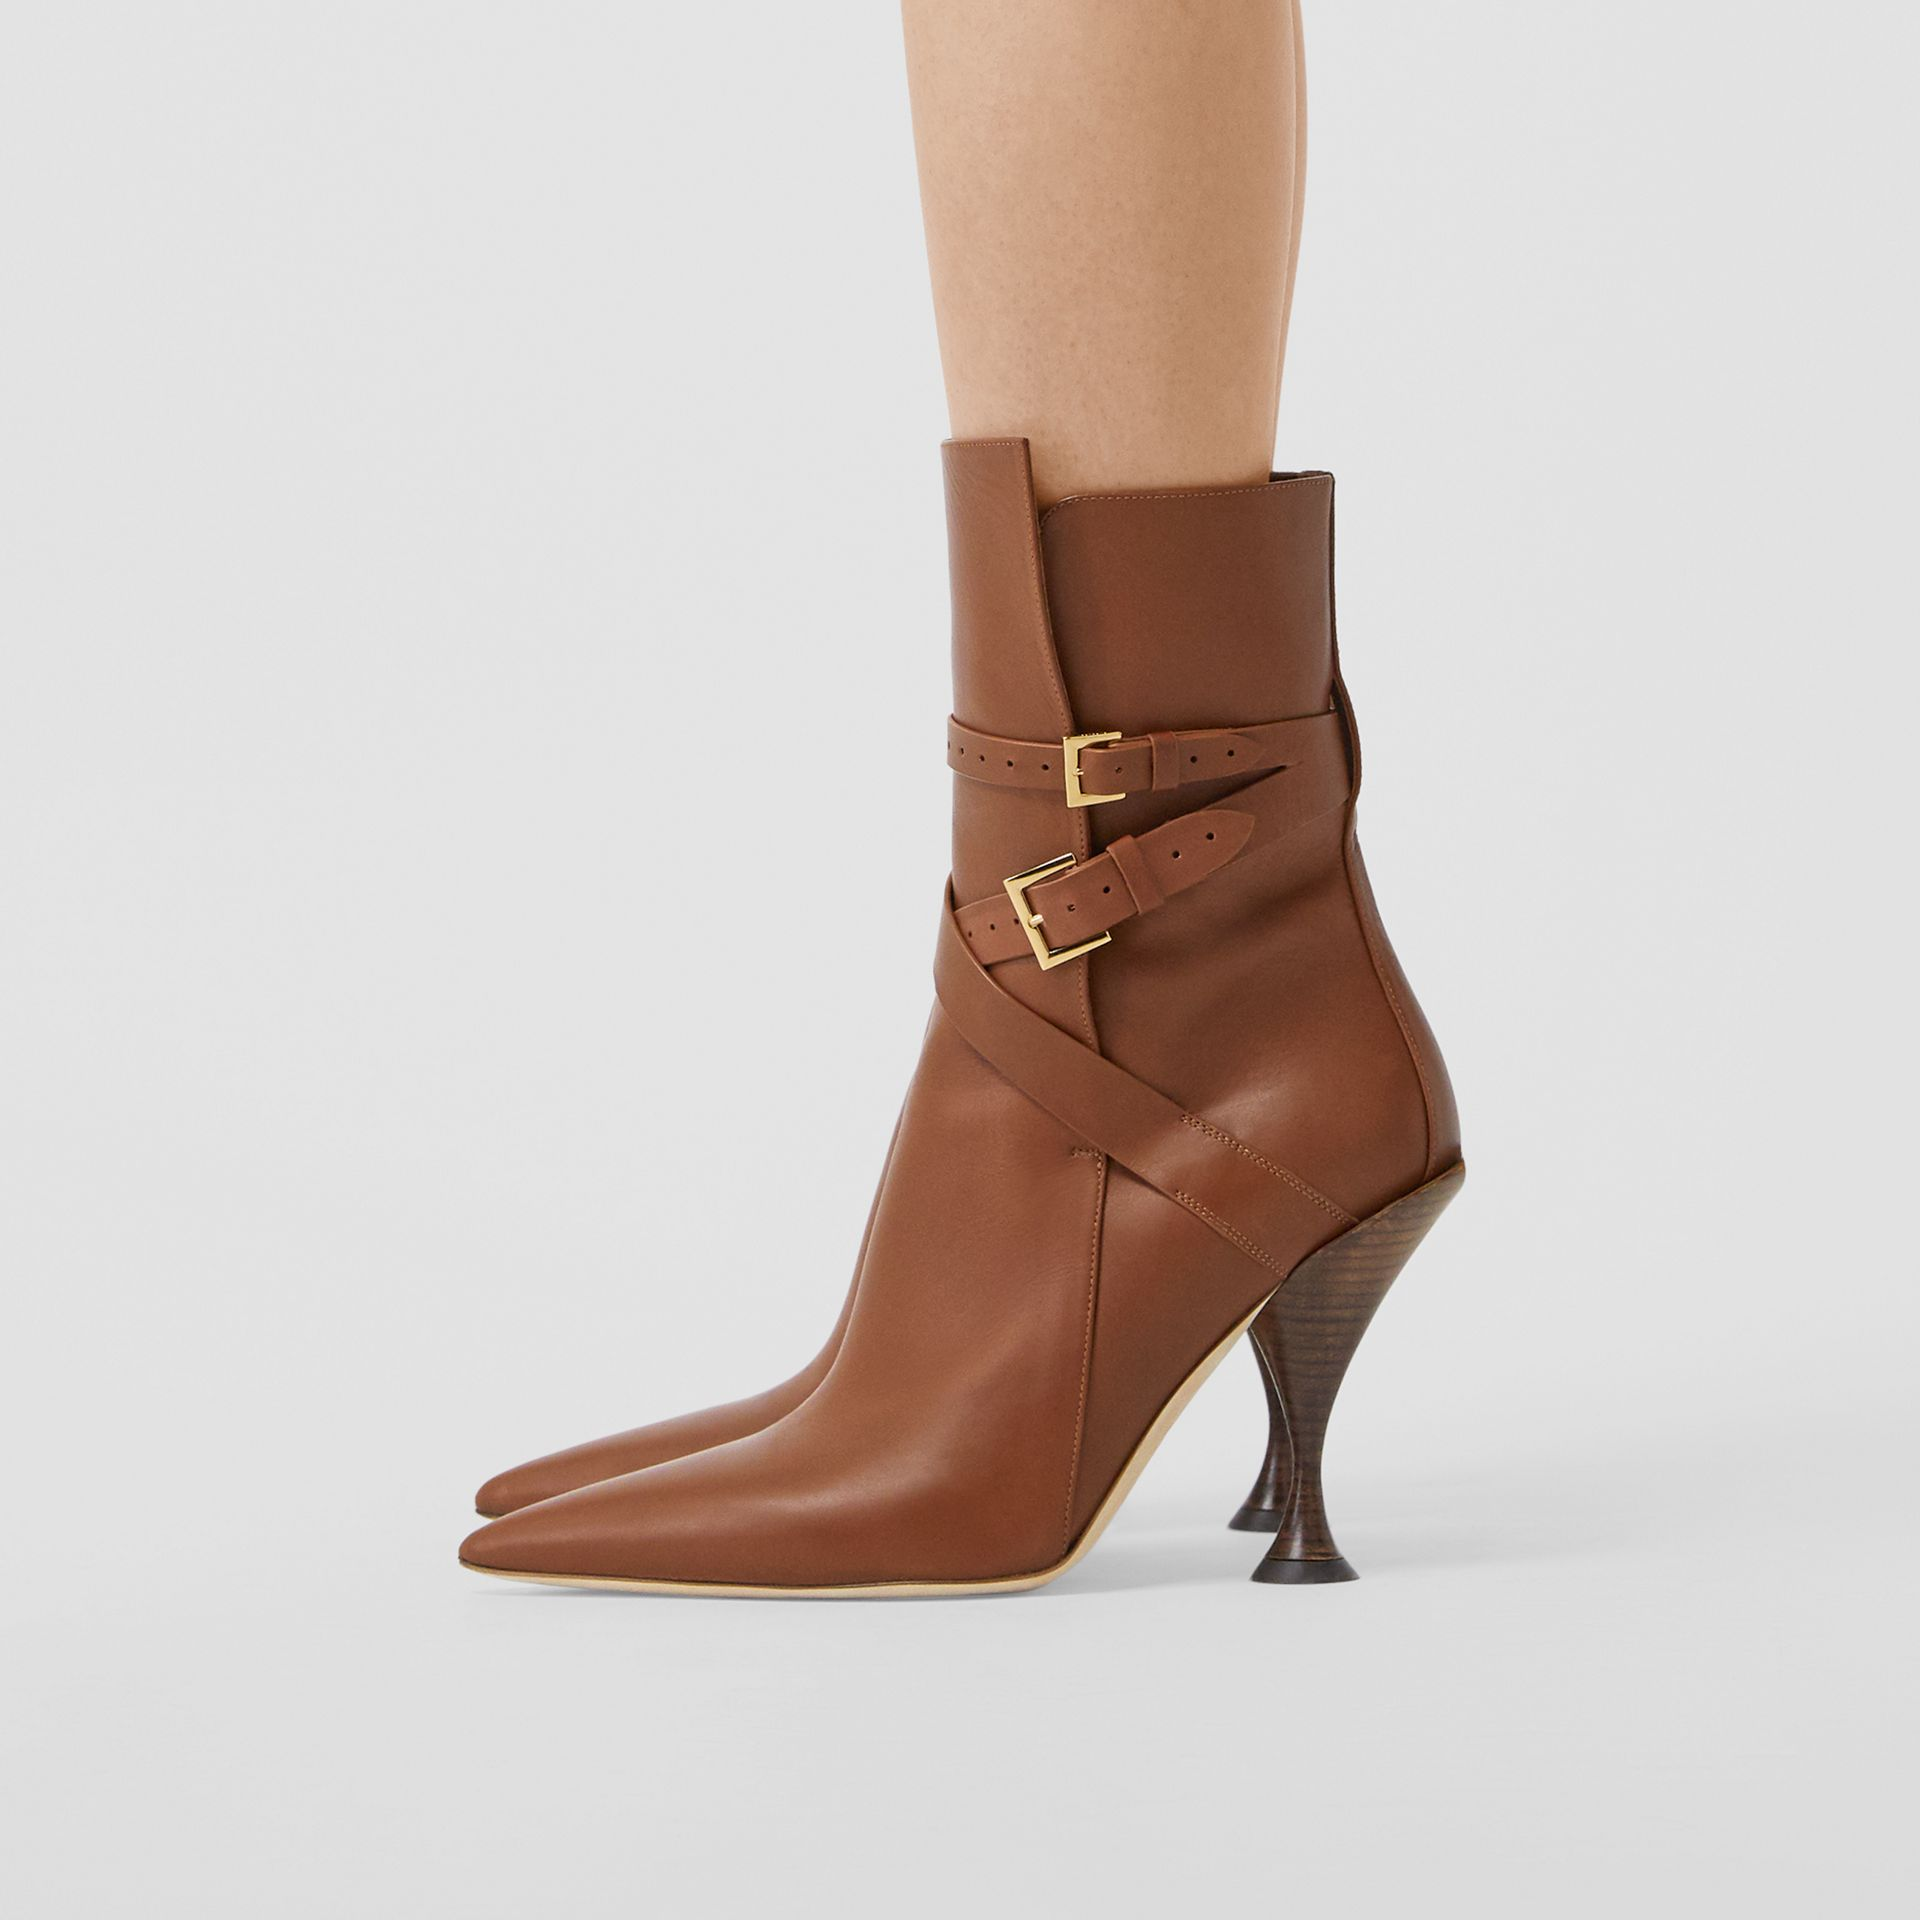 Strap Detail Leather Ankle Boots in Tan - Women | Burberry Hong Kong S.A.R - gallery image 2